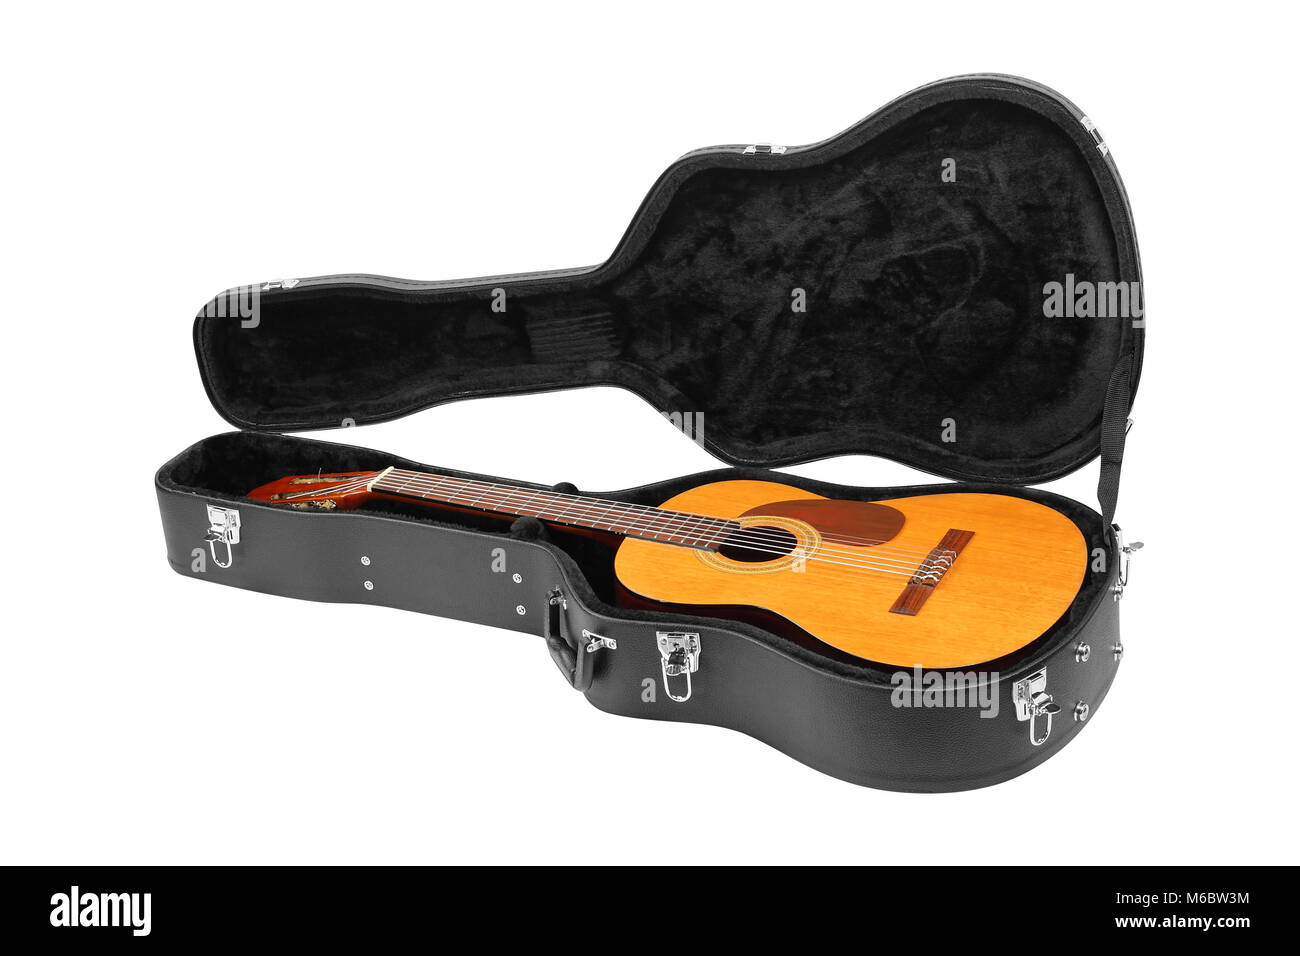 Musical instrument - Classic guitar hard case isolated on a white background. Stock Photo